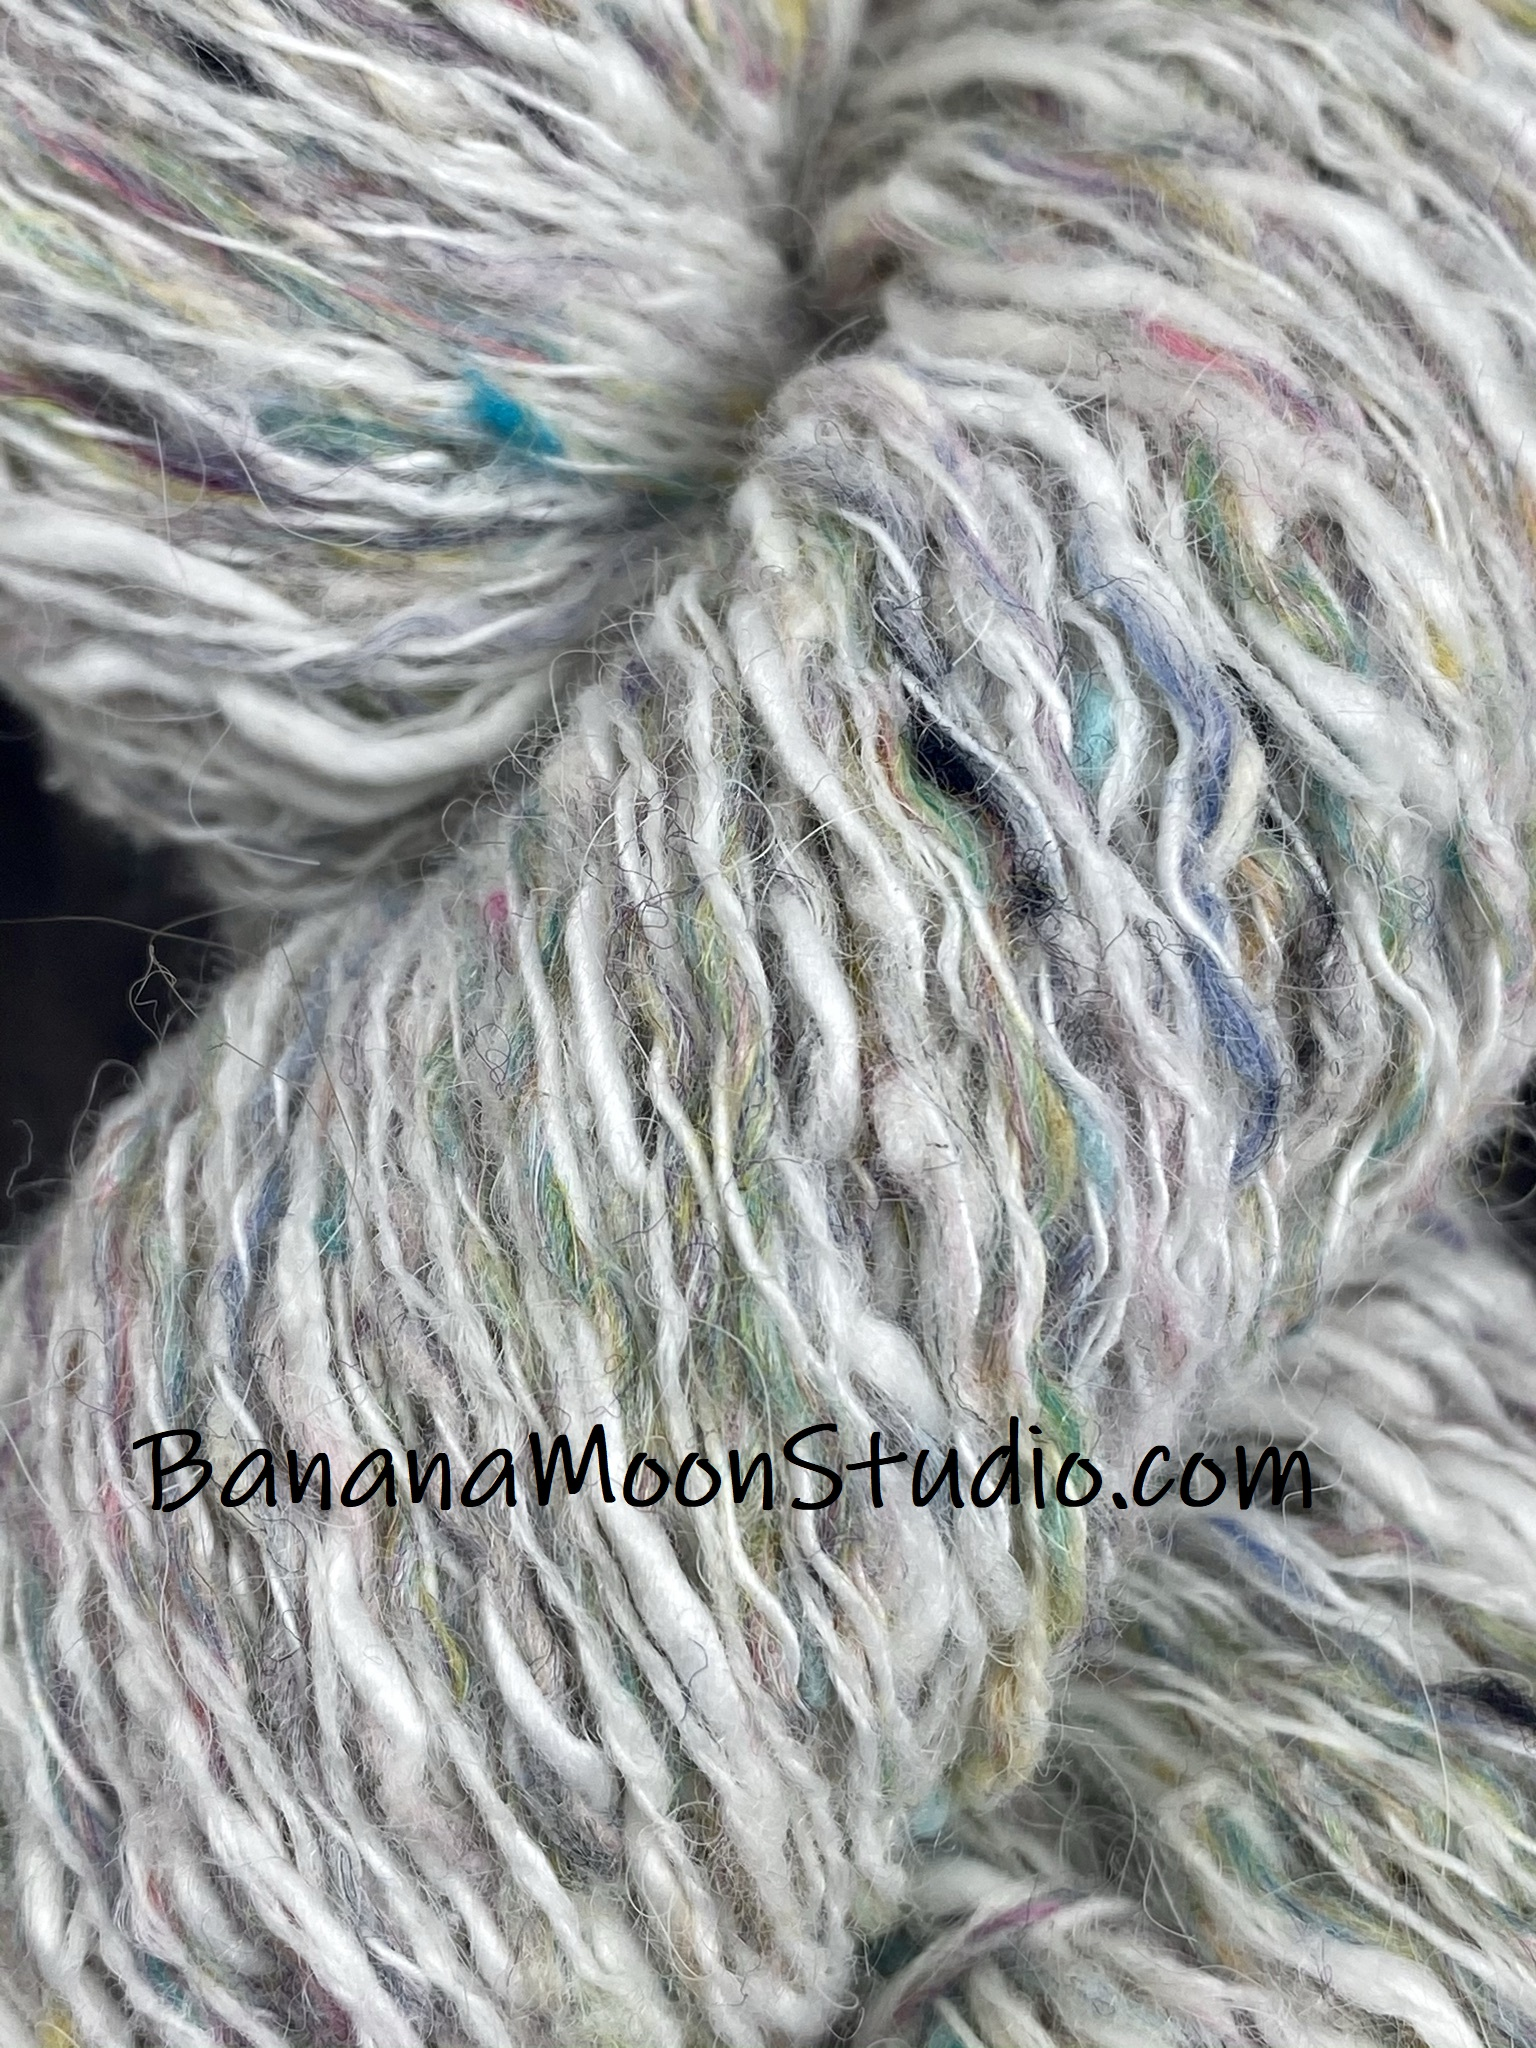 As you can see, wet blocking doesn't work for synthetic fibers. They need steam blocking. Photo tutorial from Banana Moon Studio.